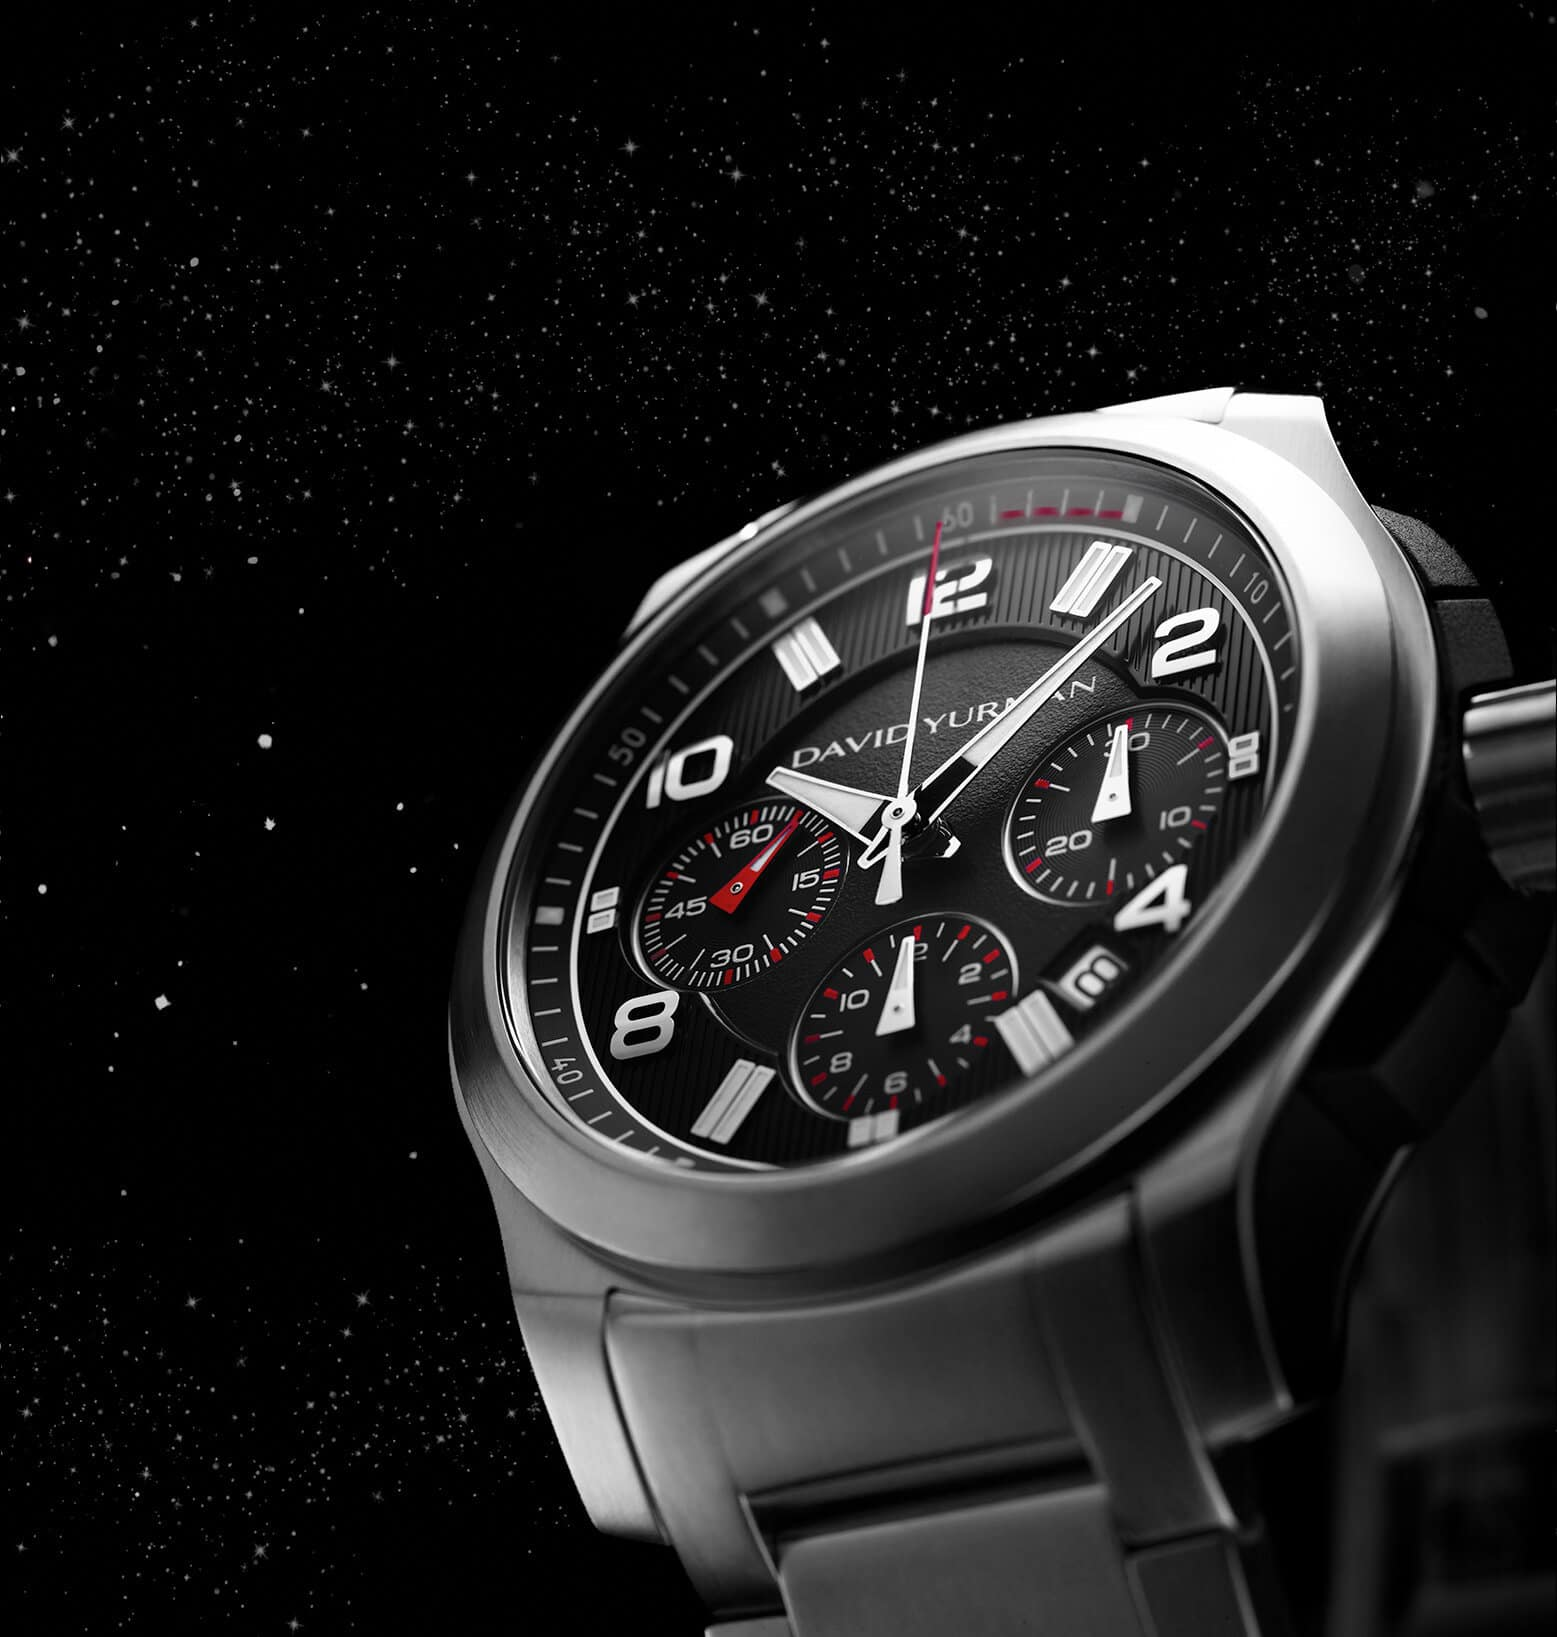 A color photograph shows a close-up shot looking up at the face of a David Yurman men's Revolution chronograph standing upright in front of a starry night sky. The watch is crafted with a stainless-steel case and a black-and-silver dial.